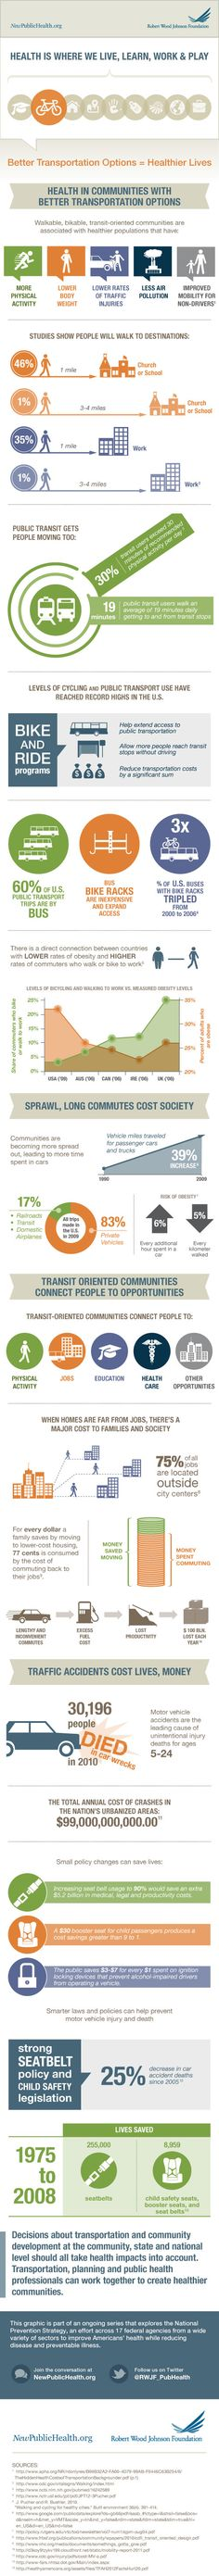 #Infographic showing that people are healthier in communities with better #transportation options